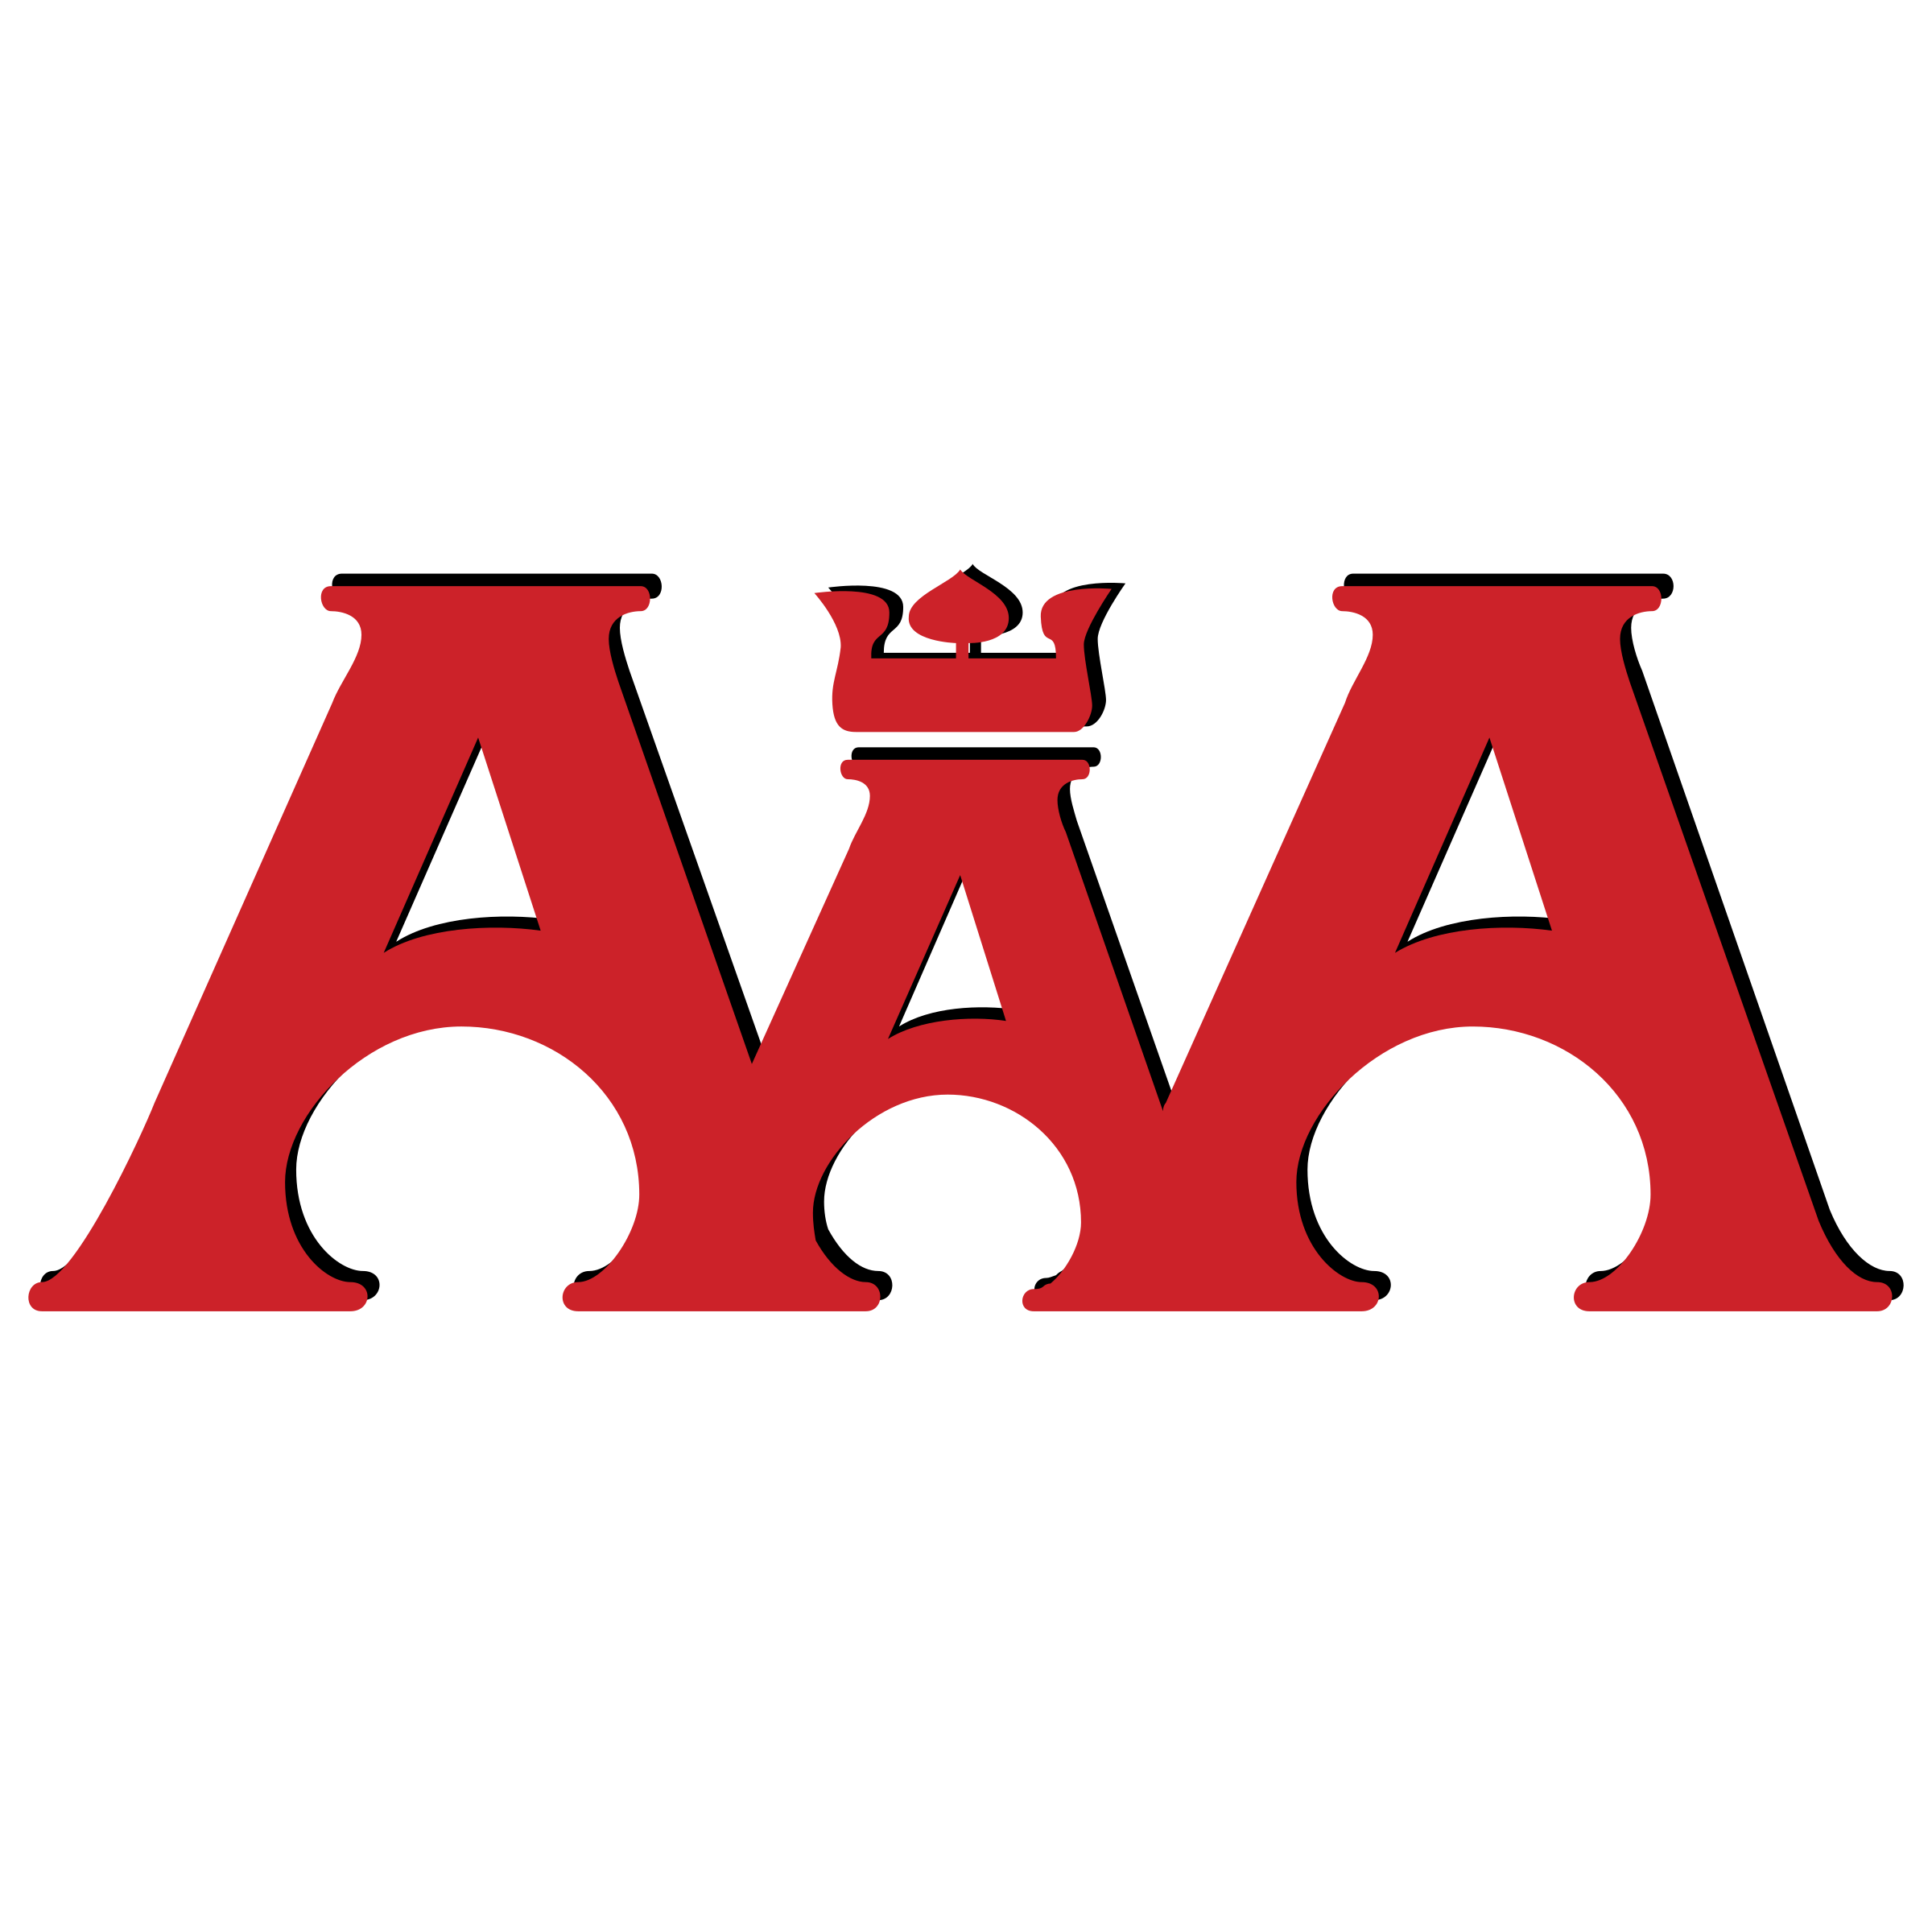 AAA Logo PNG Transparent & SVG Vector.